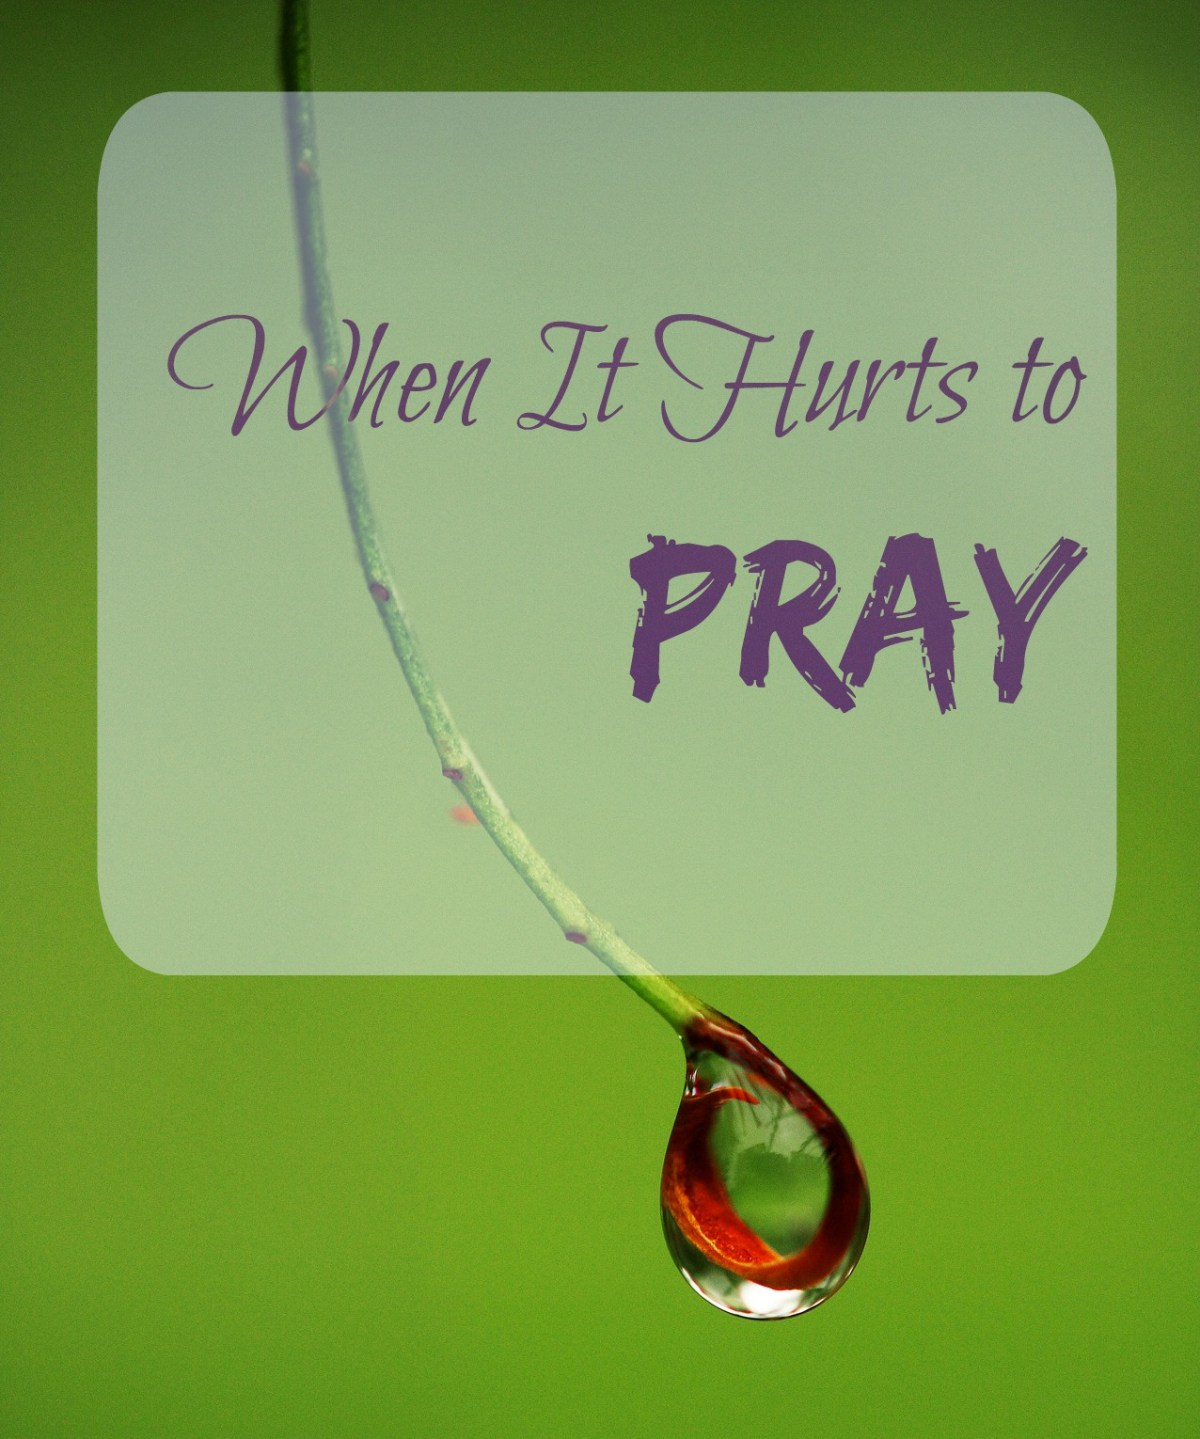 Sometimes in the hard seasons of life, we try to cope with the pain by forgetting it. Spending time in prayer, though, rips off the band-aid.